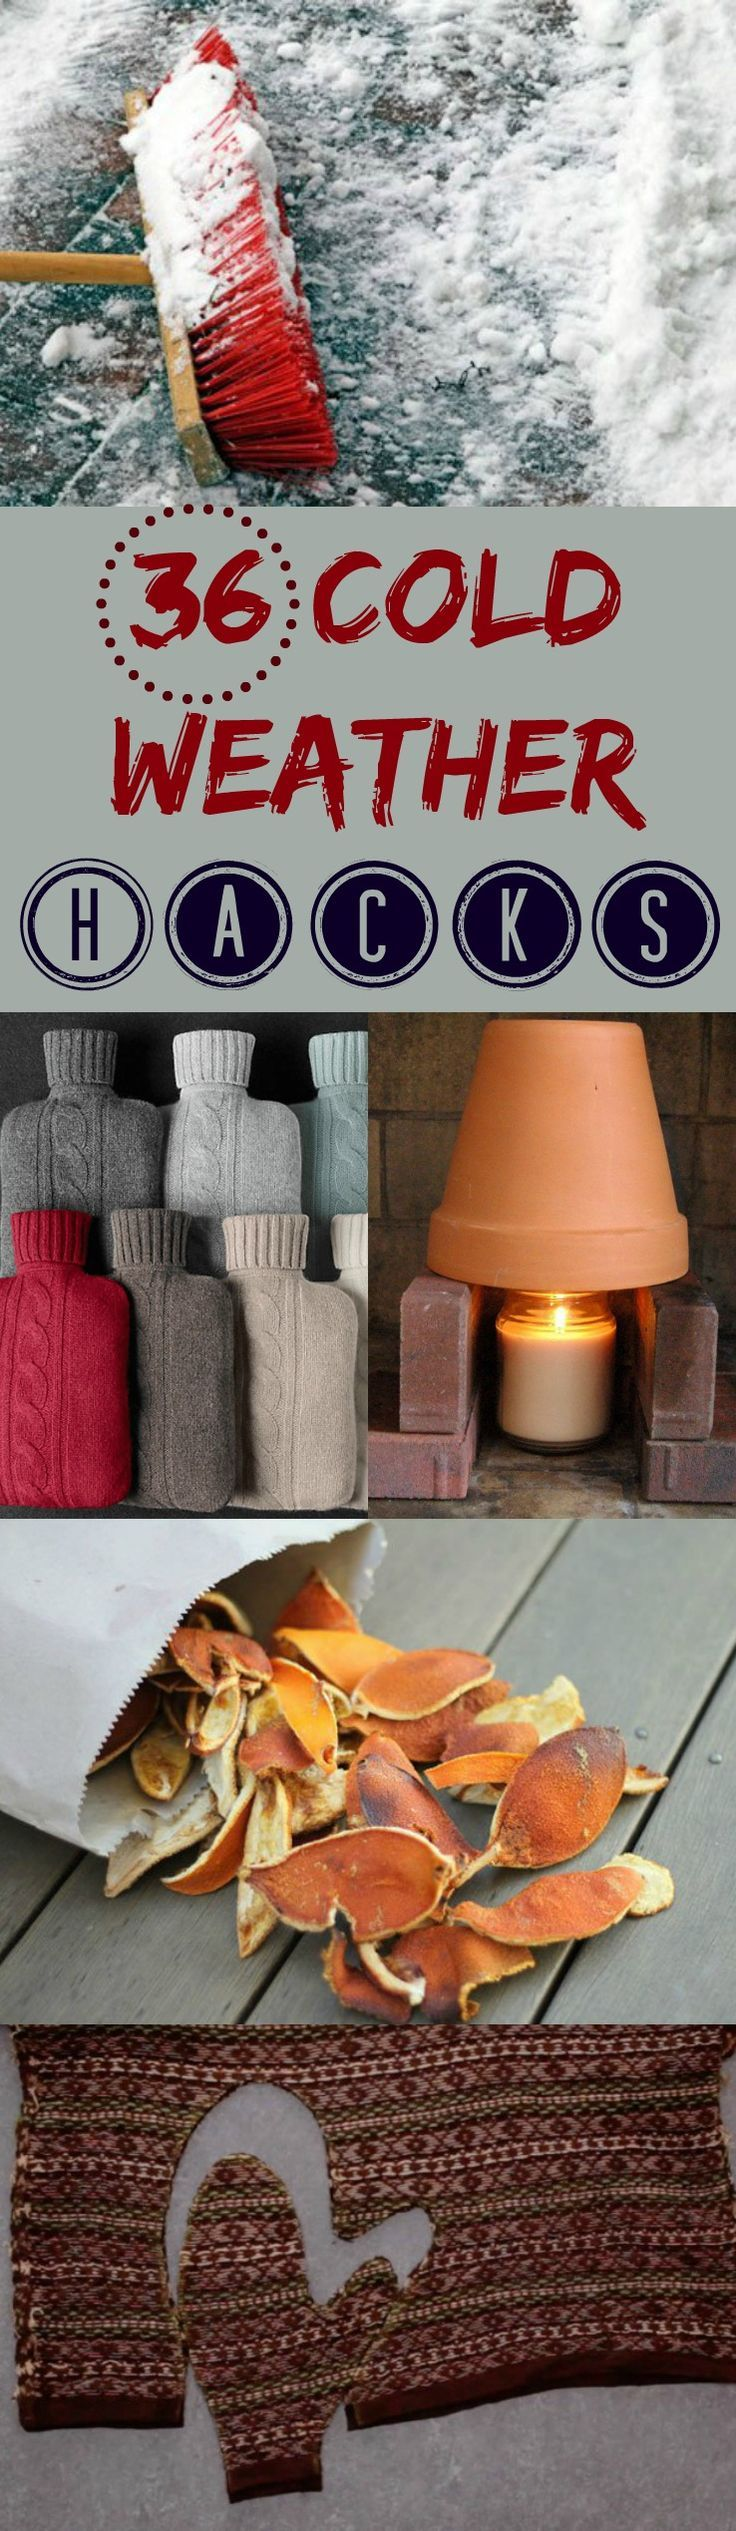 36 Cold Weather Hacks to Keep You Cozy This Winter